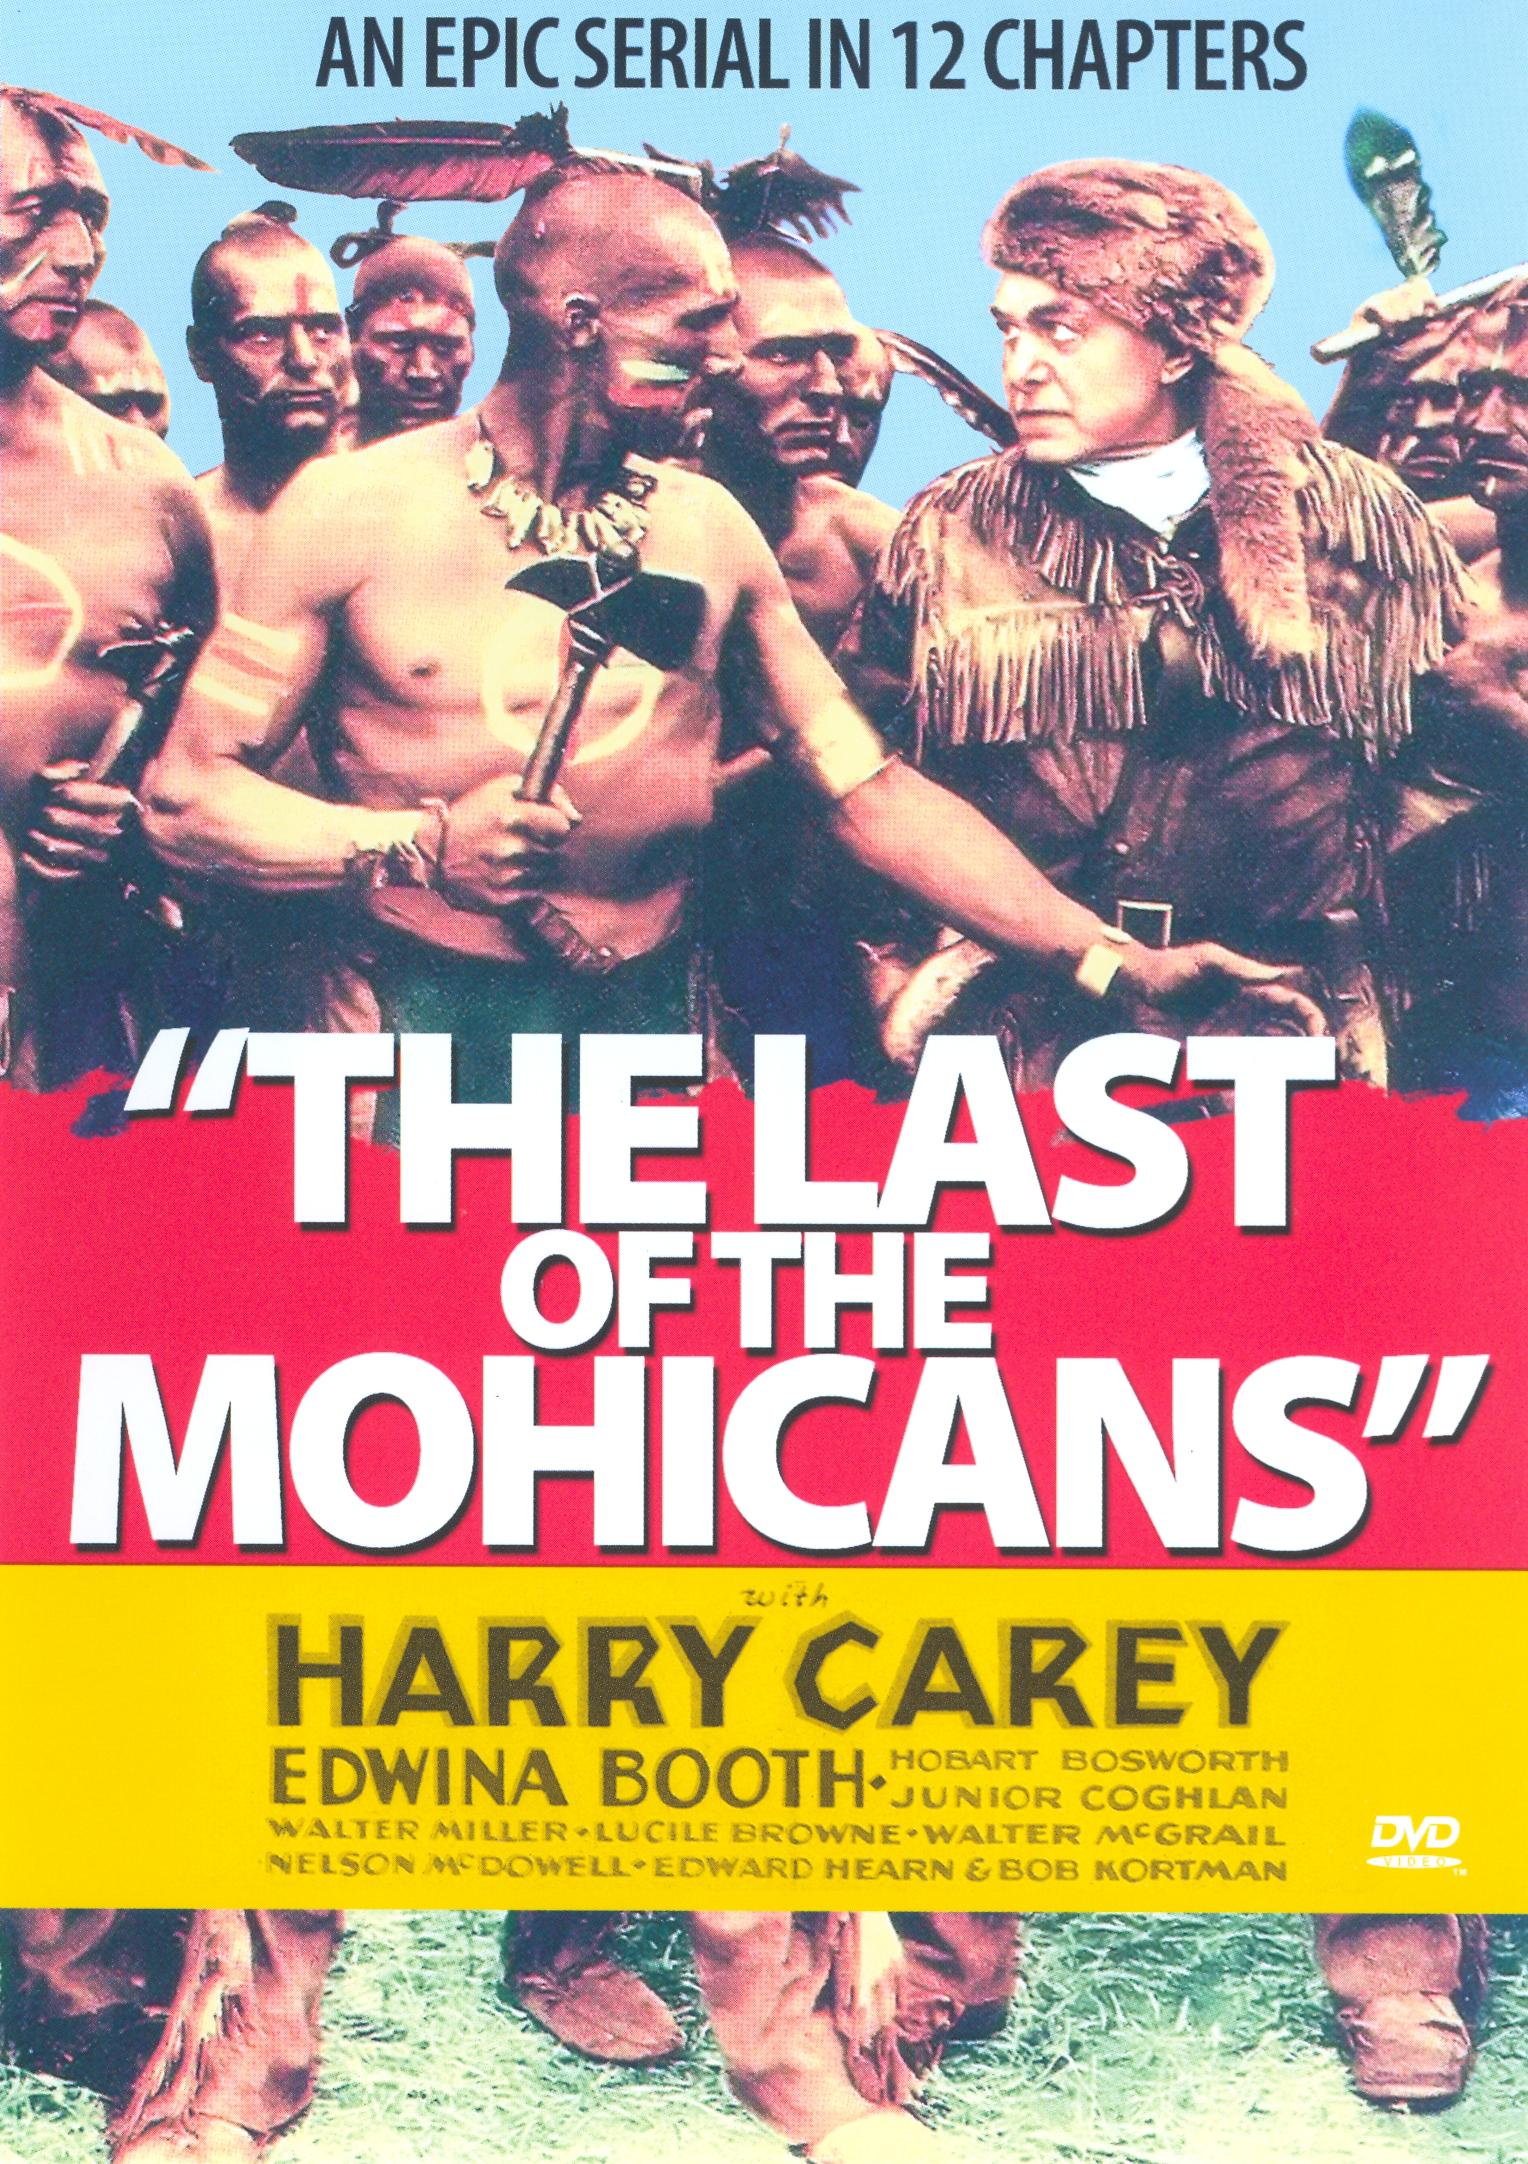 a synopsis on the last of the mohicans thoughts